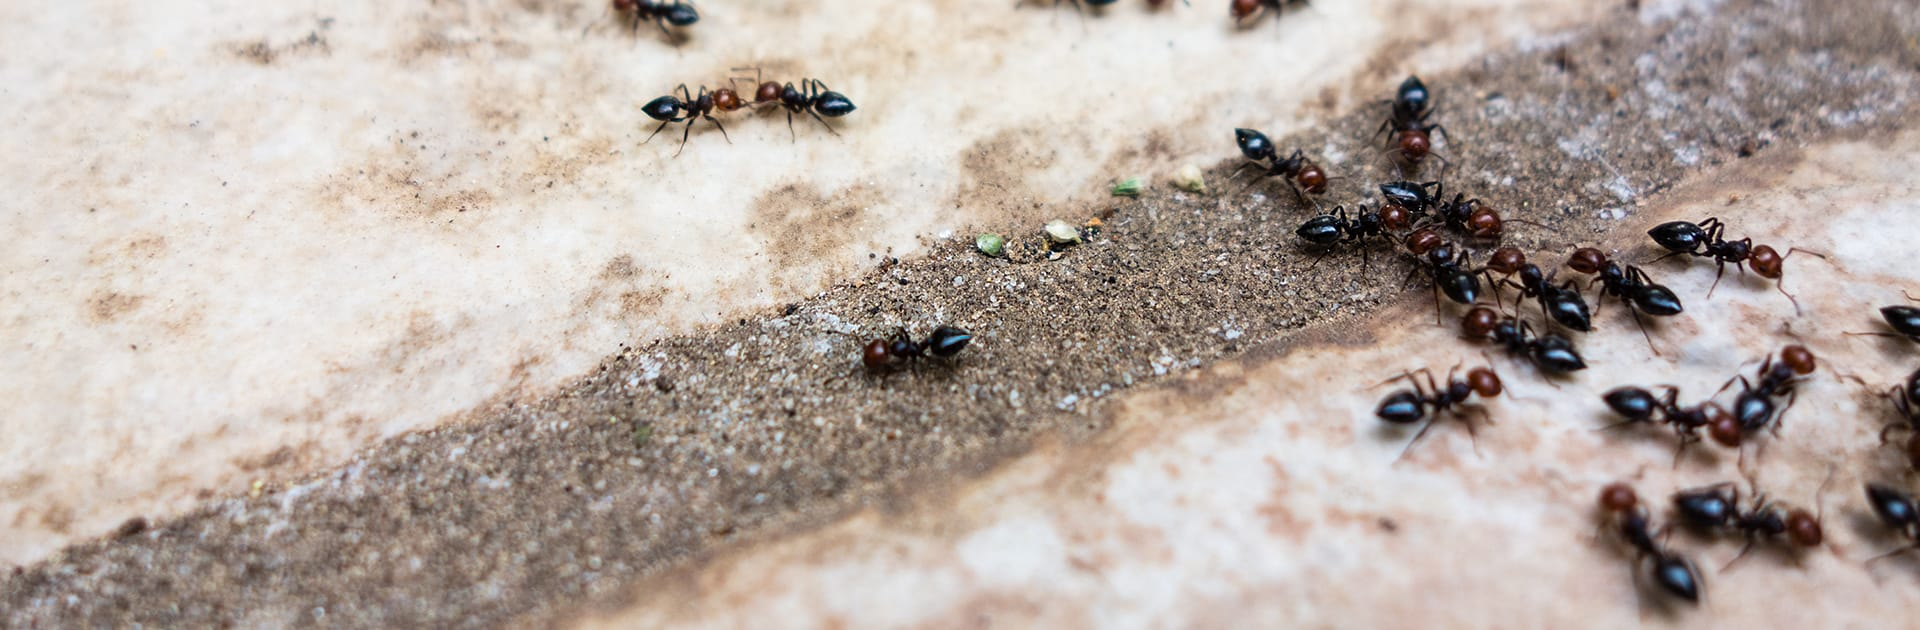 pavement ants crawling on the ground outside a home